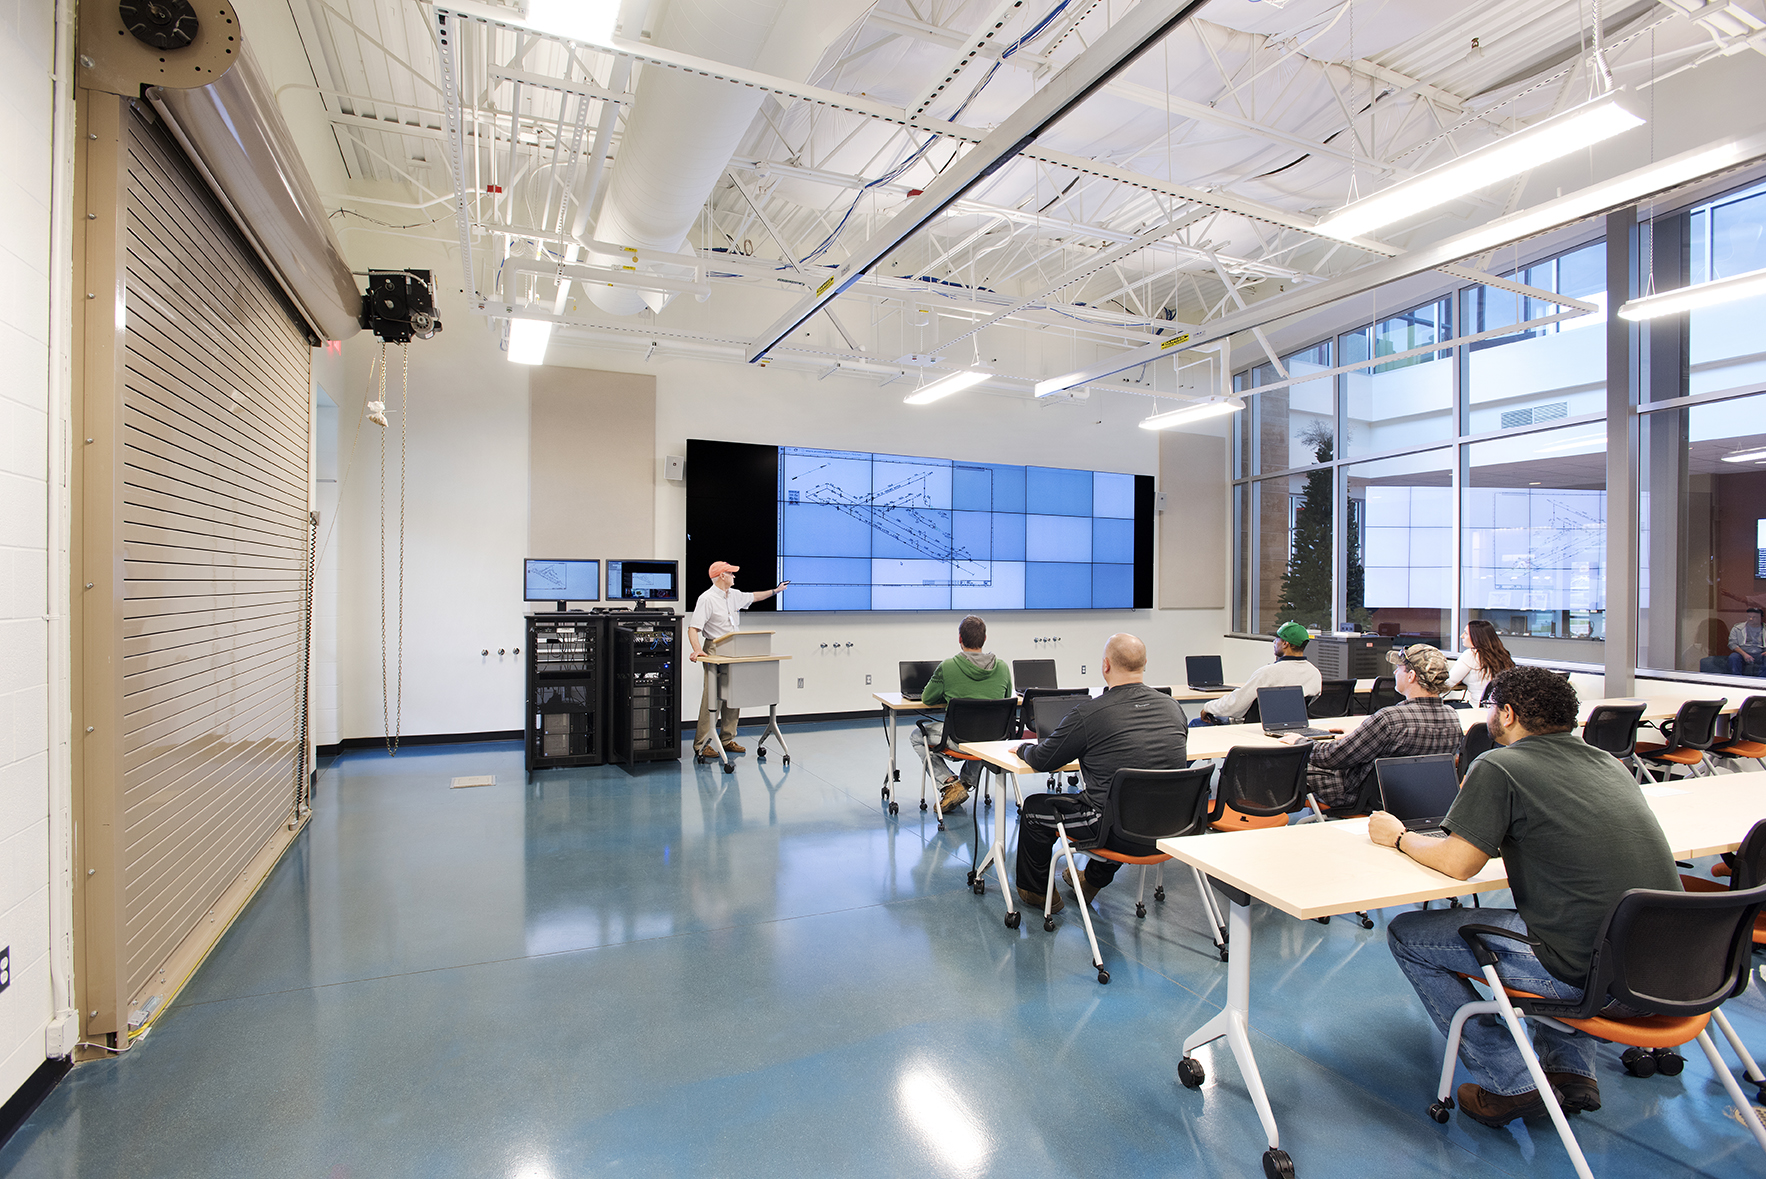 BridgeValley ATC Emerging Tech Lab